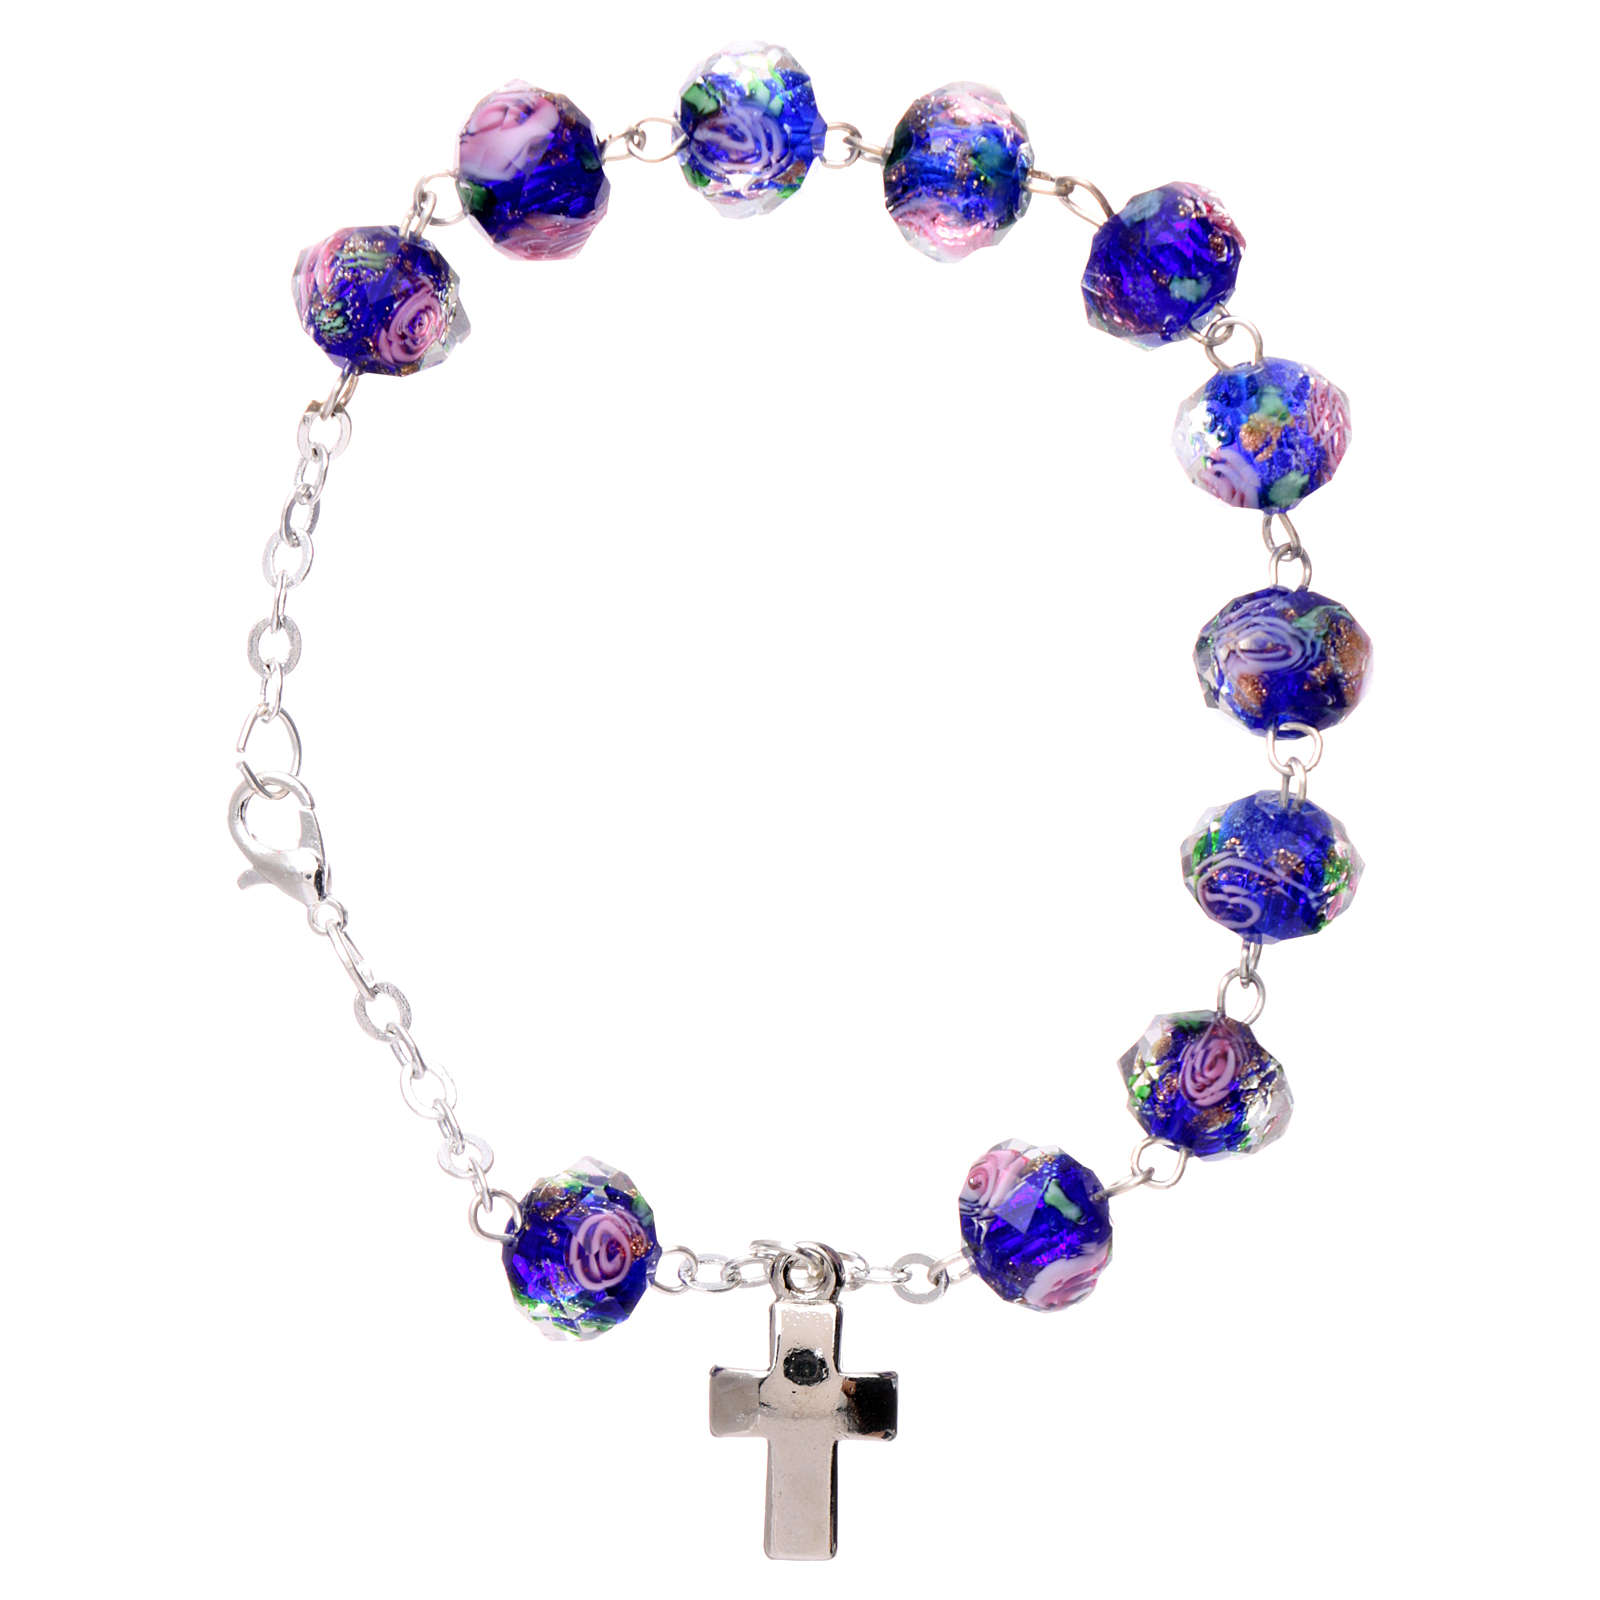 Rosary bracelet with 5x5 mm faceted blue grains and roses, chain with fastener 4